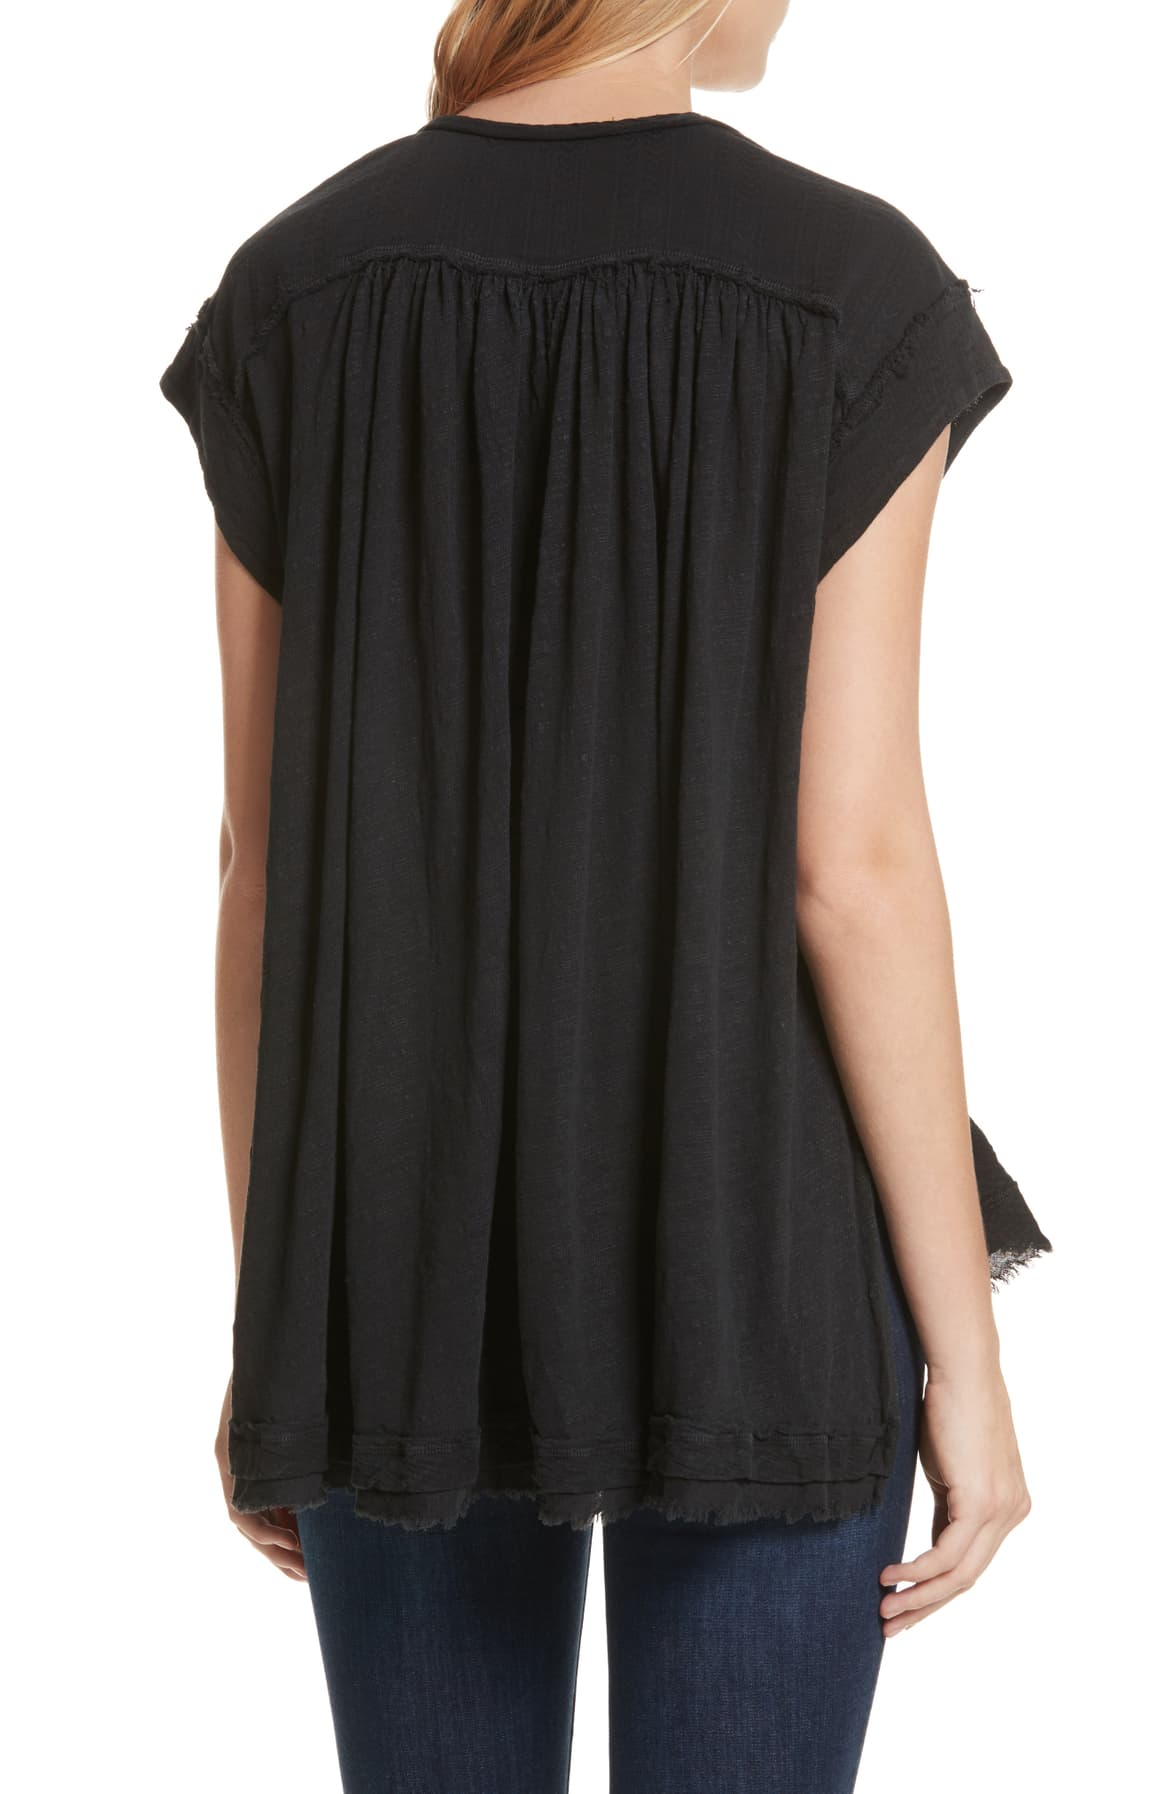 Free People Juniors Aster High-Low Henley Top Black - Gear Relapse